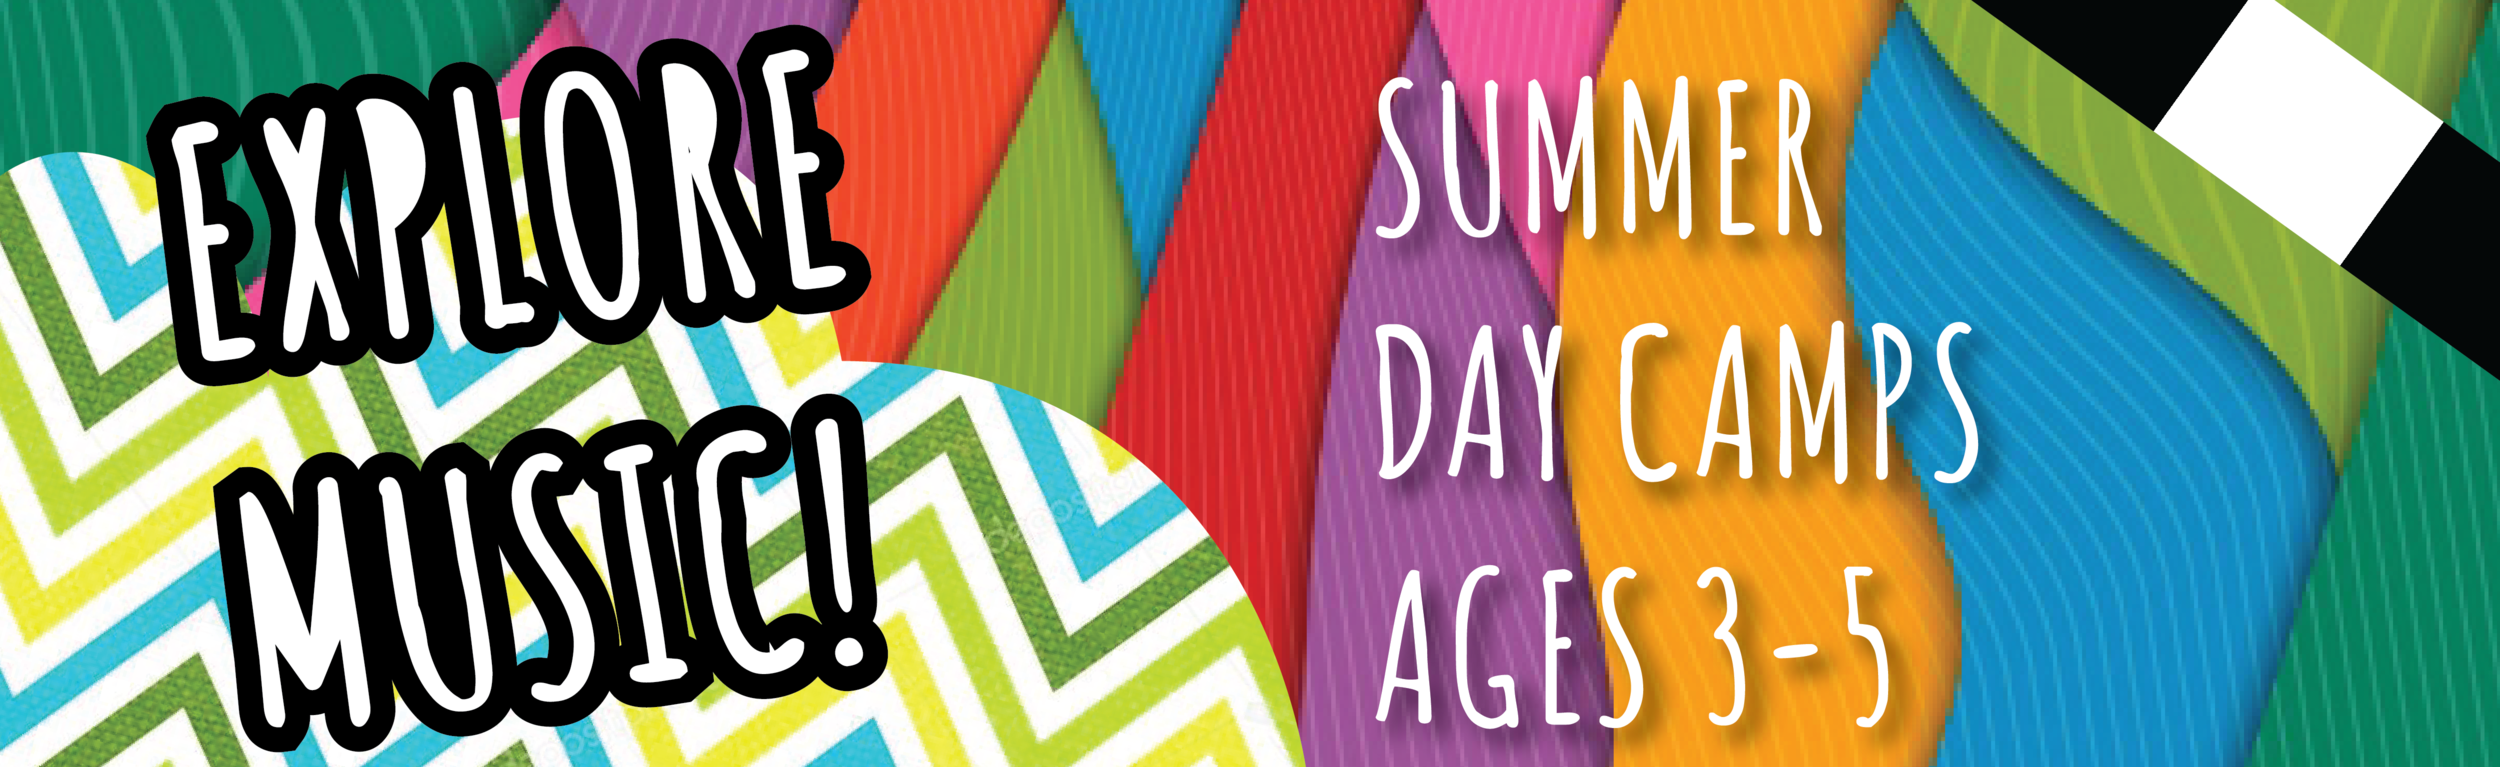 Summer day camps ages 3-5